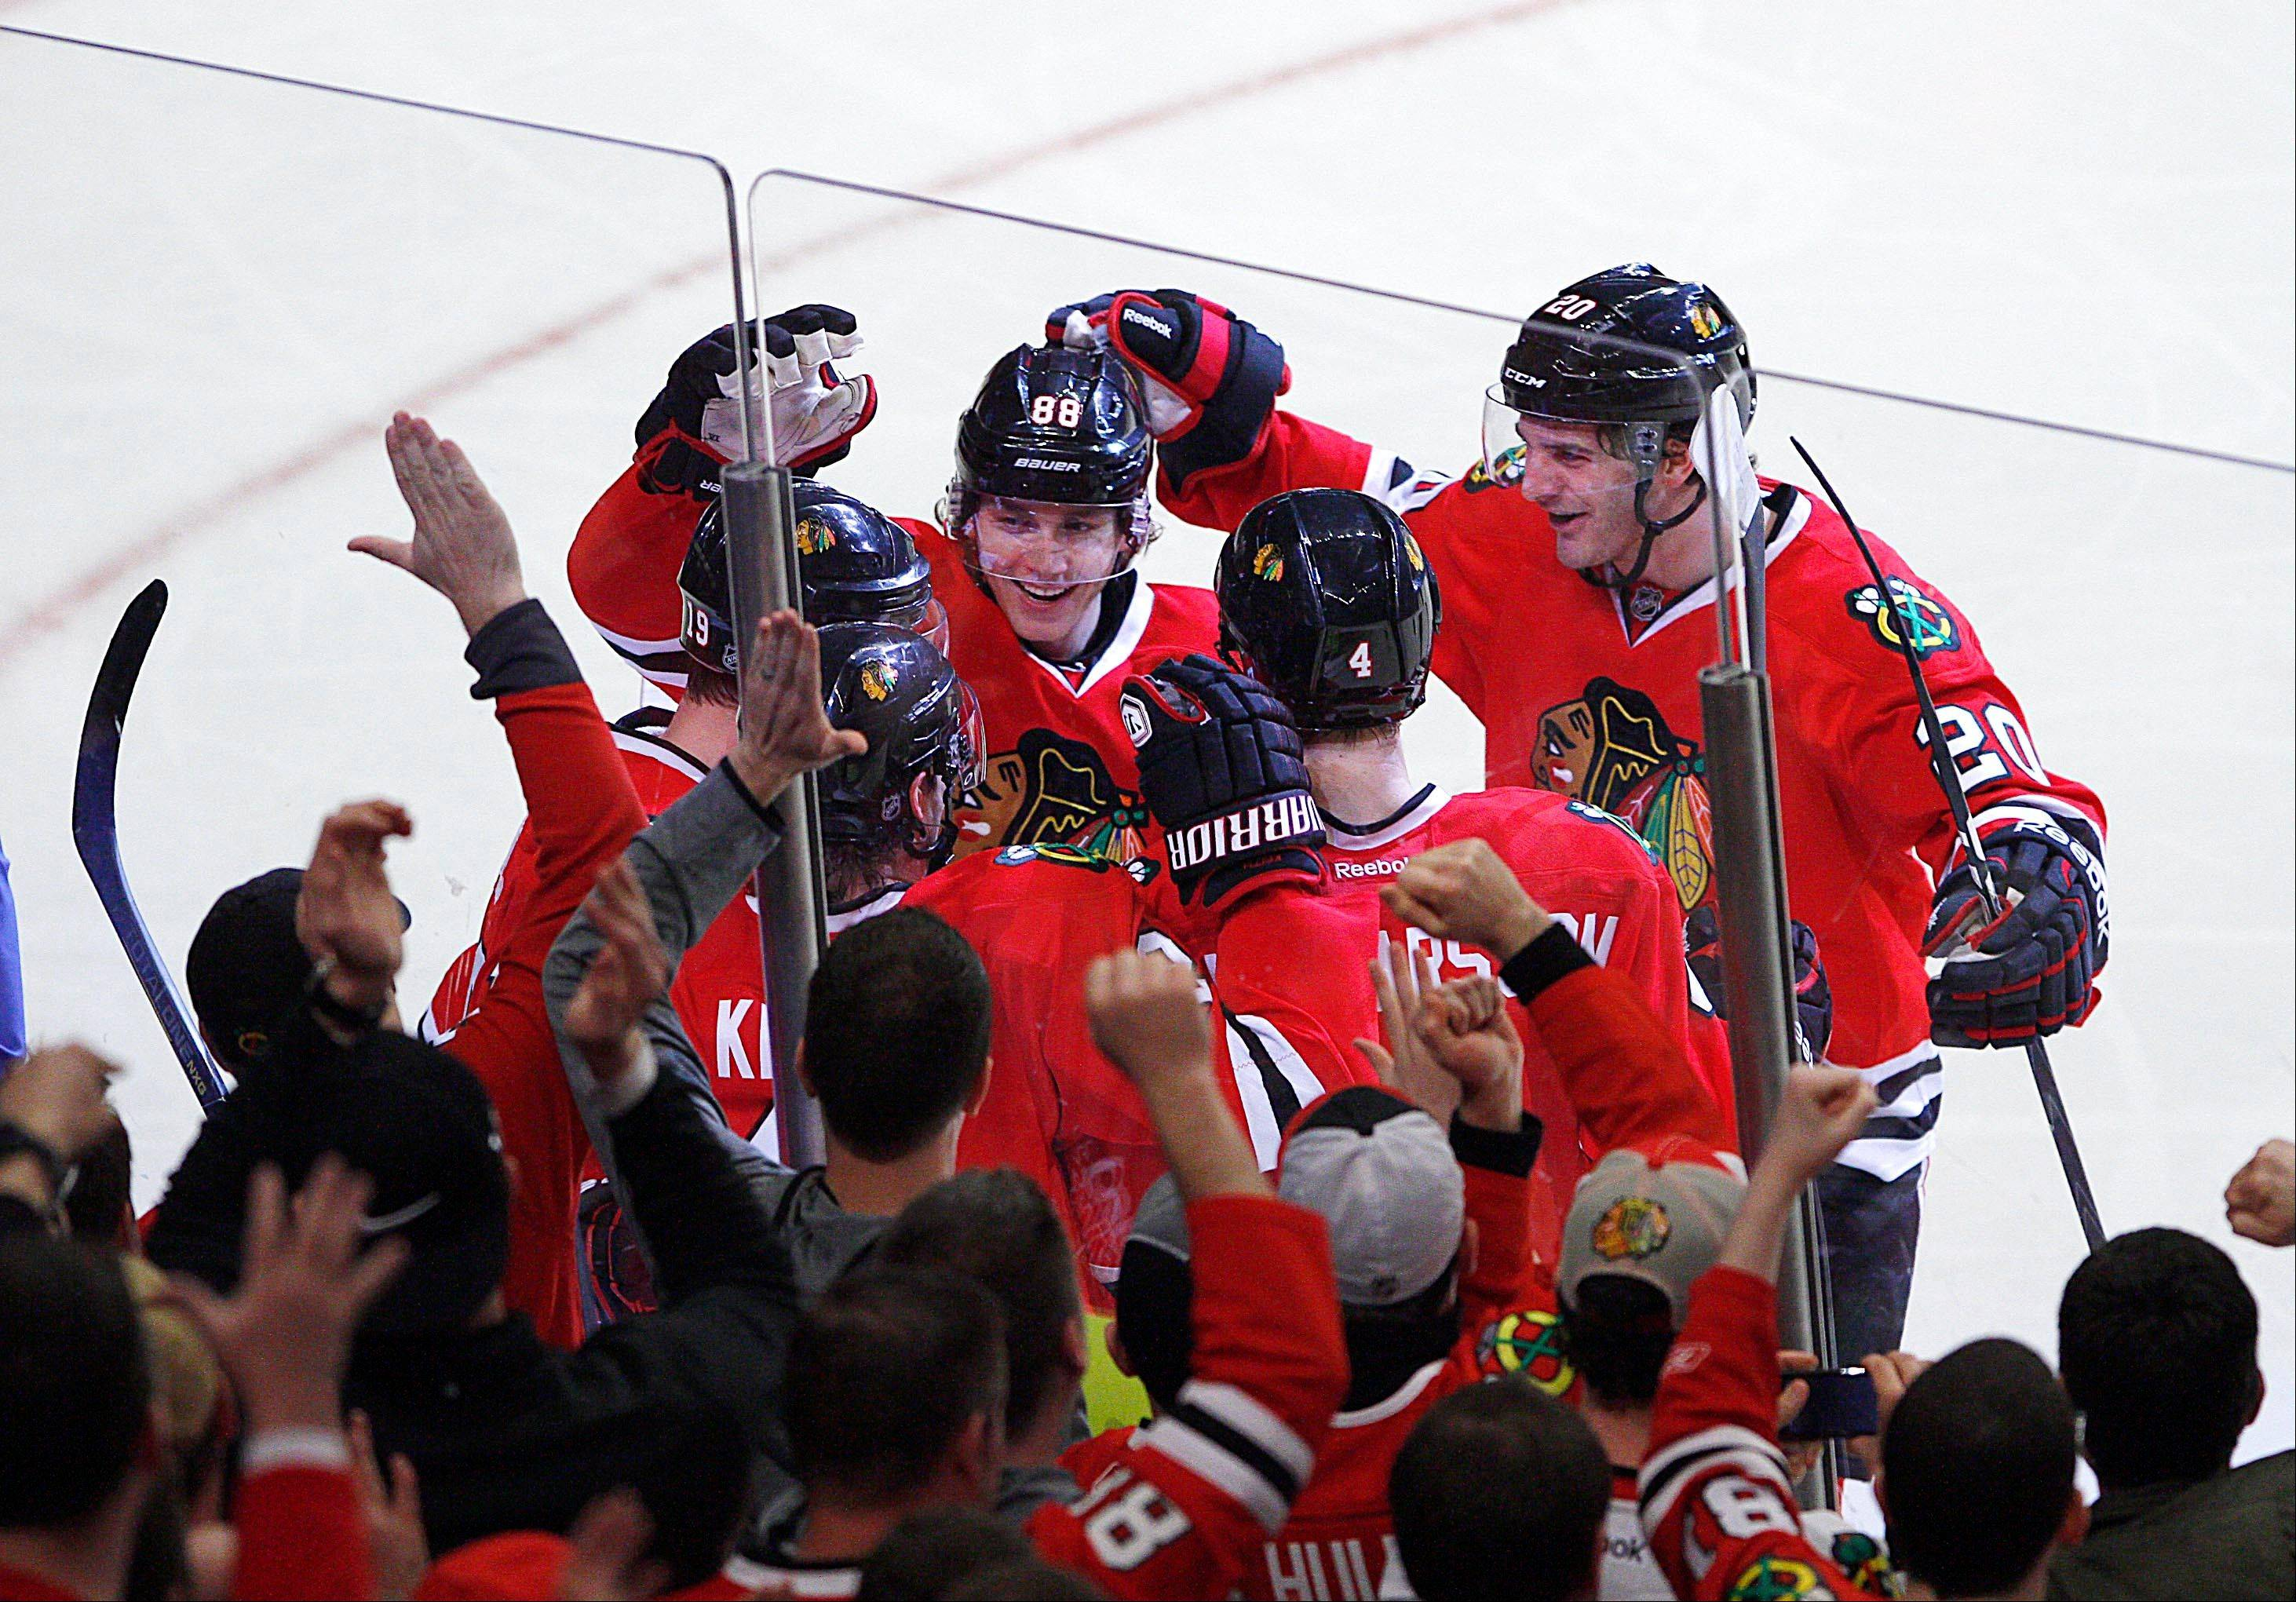 Chicago Blackhawks players including Patrick Kane, Brandon Saad, Duncan Keith and Niklas Hjalmarsson surround Jonathan Toews (lower left) after Toews scored the eventual game winner in the third period as the Hawks beat the Nashville Predators 5-3 in an NHL hockey game in Chicago on Sunday.